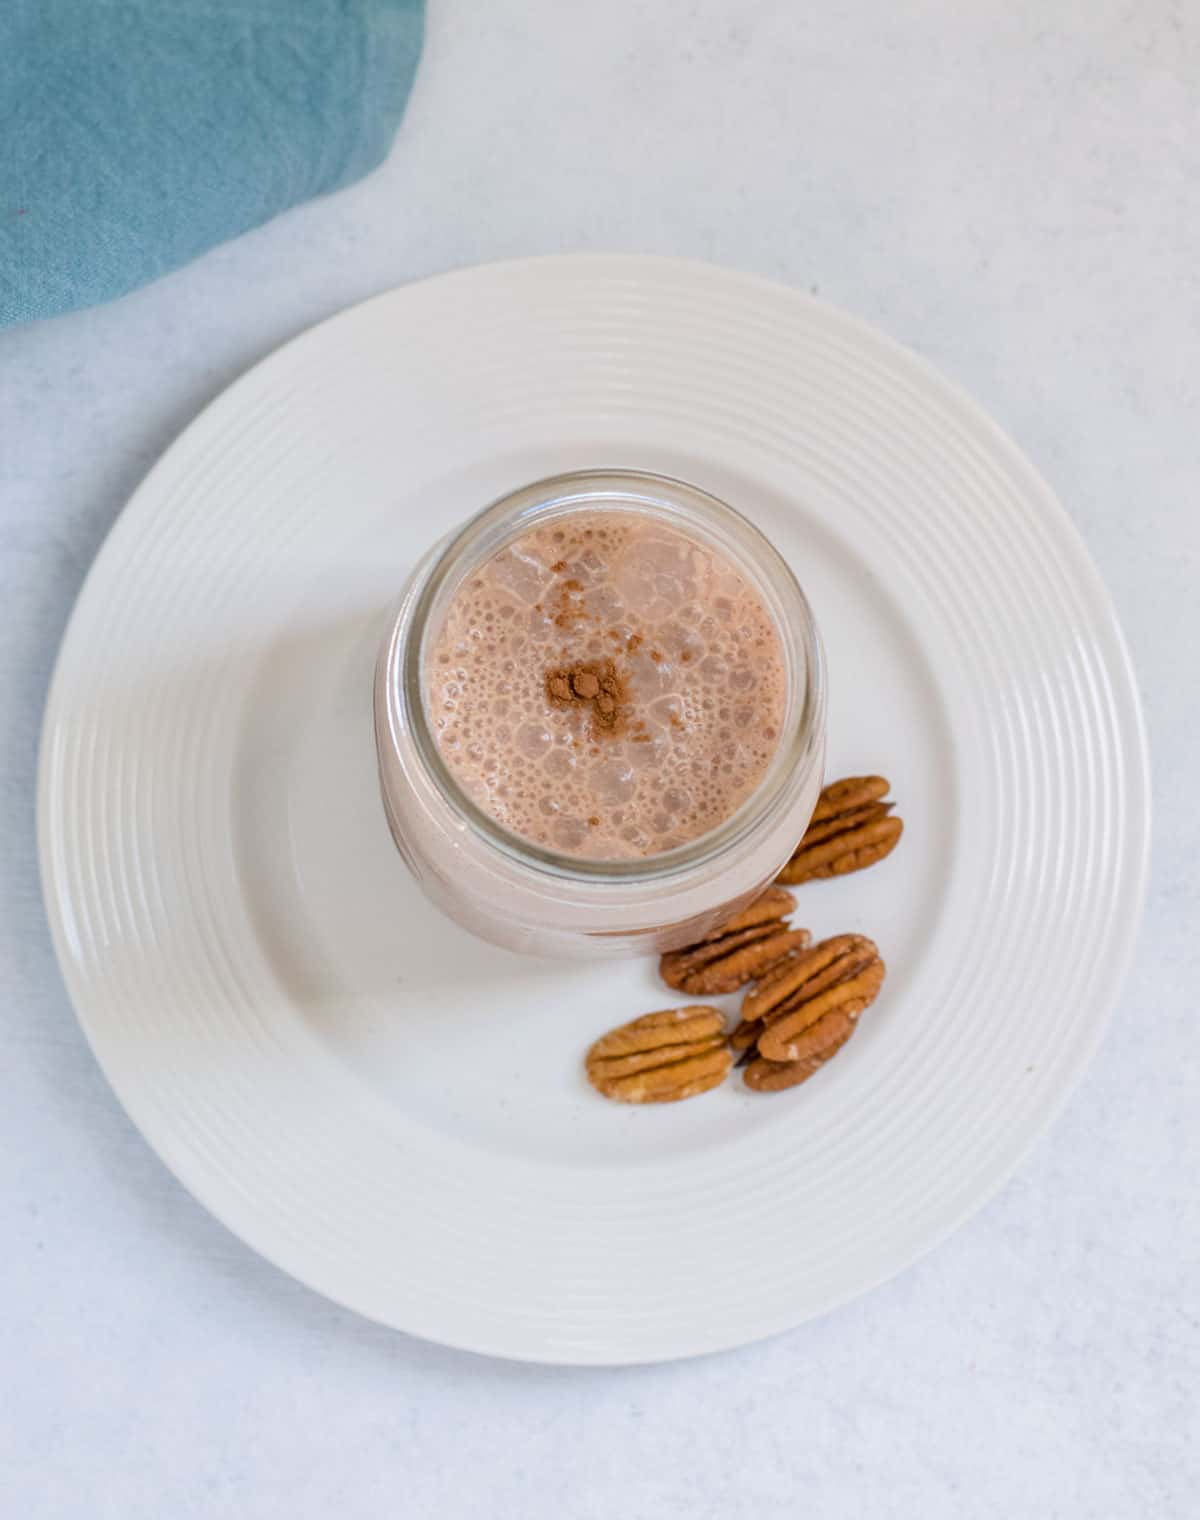 foam on top of chocolate smoothie with pecans